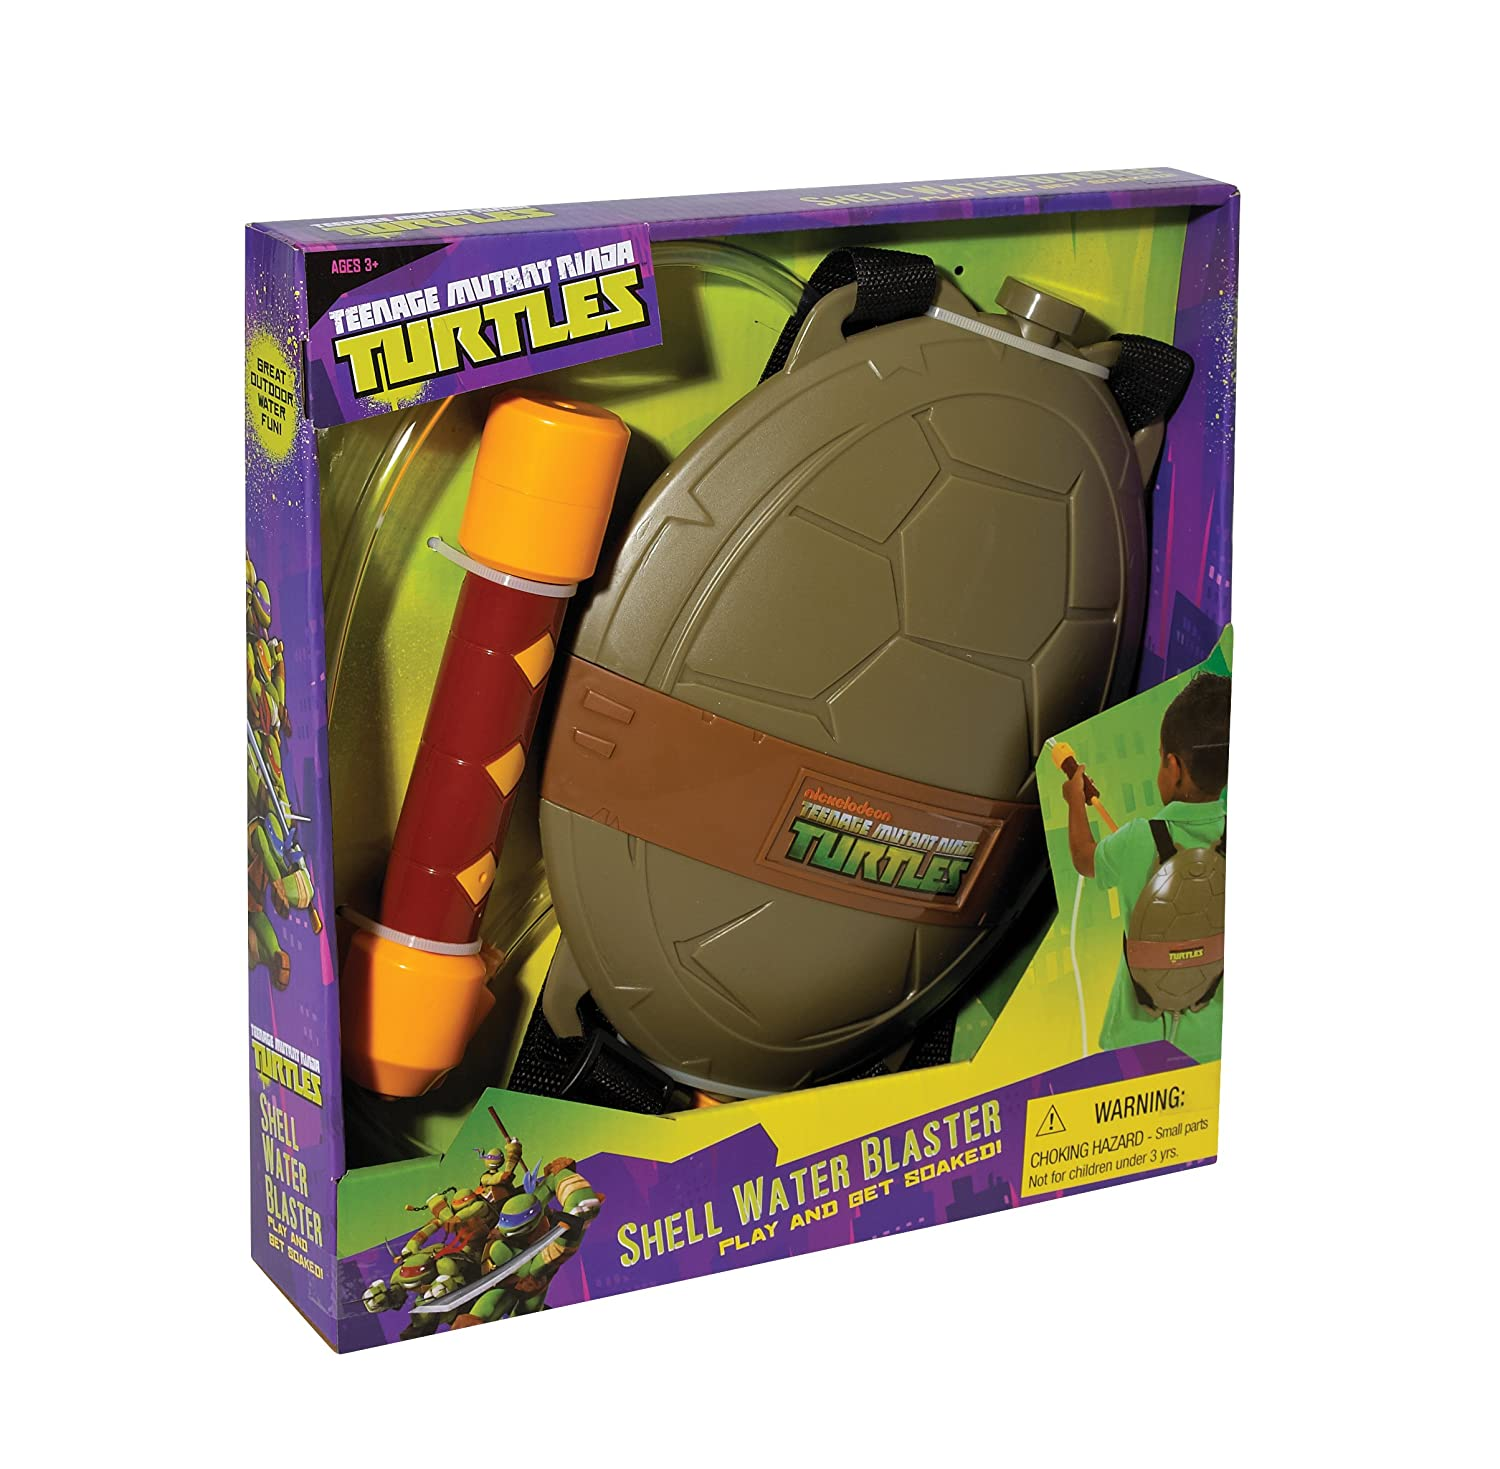 Amazon.com: Little Kids pequeño mutante tortugas ...